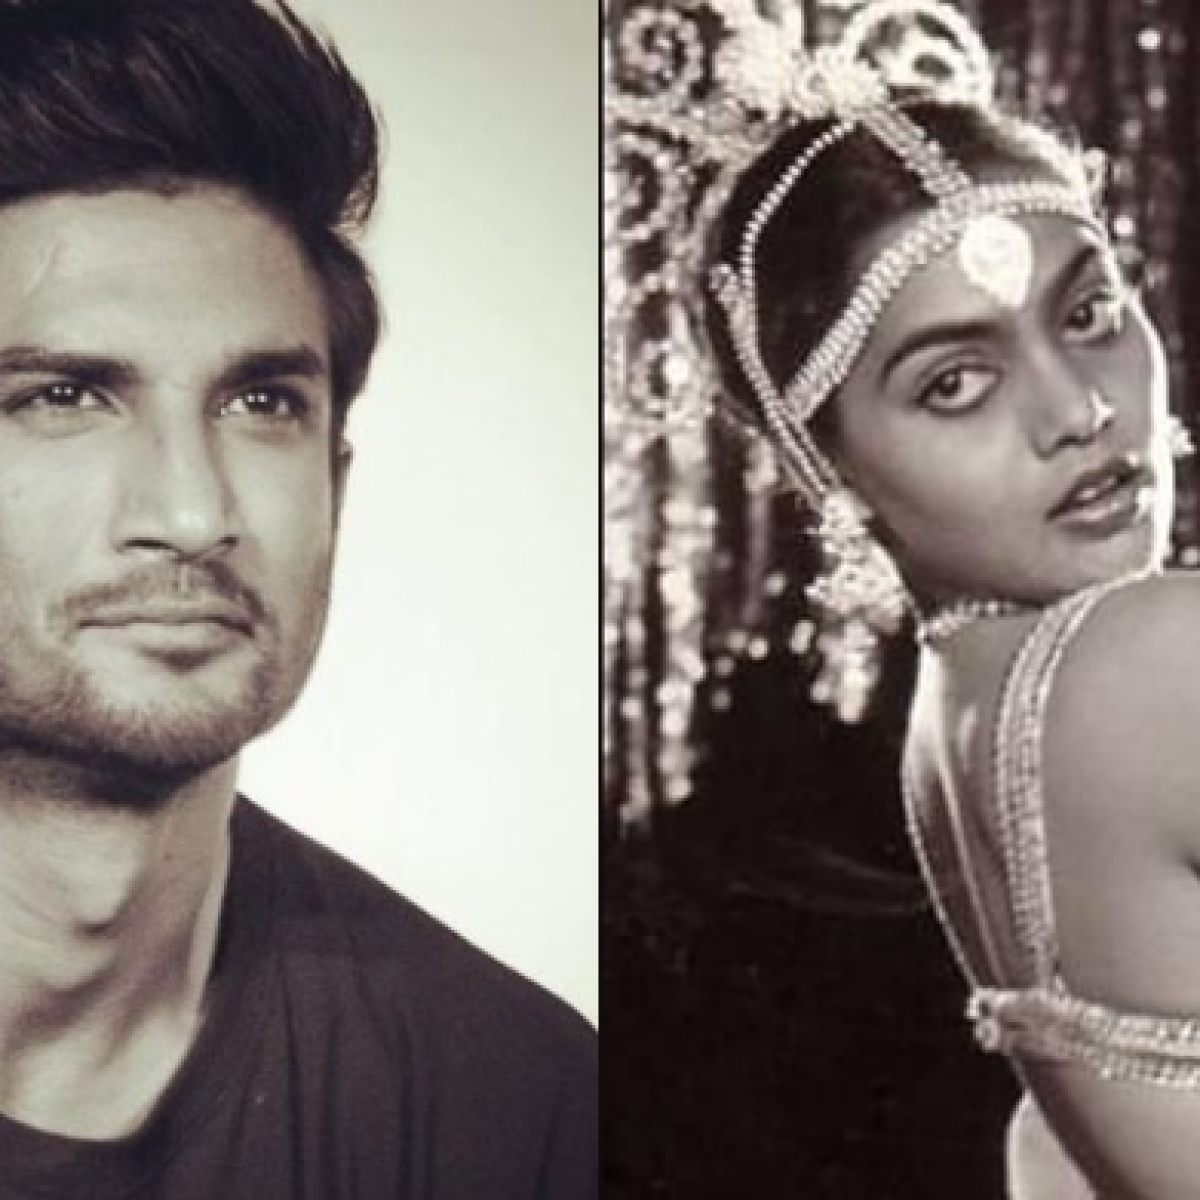 Silk Smitha Death Anniversary: How yesteryear actor's suicide was treated differently from Sushant Singh Rajput's demise